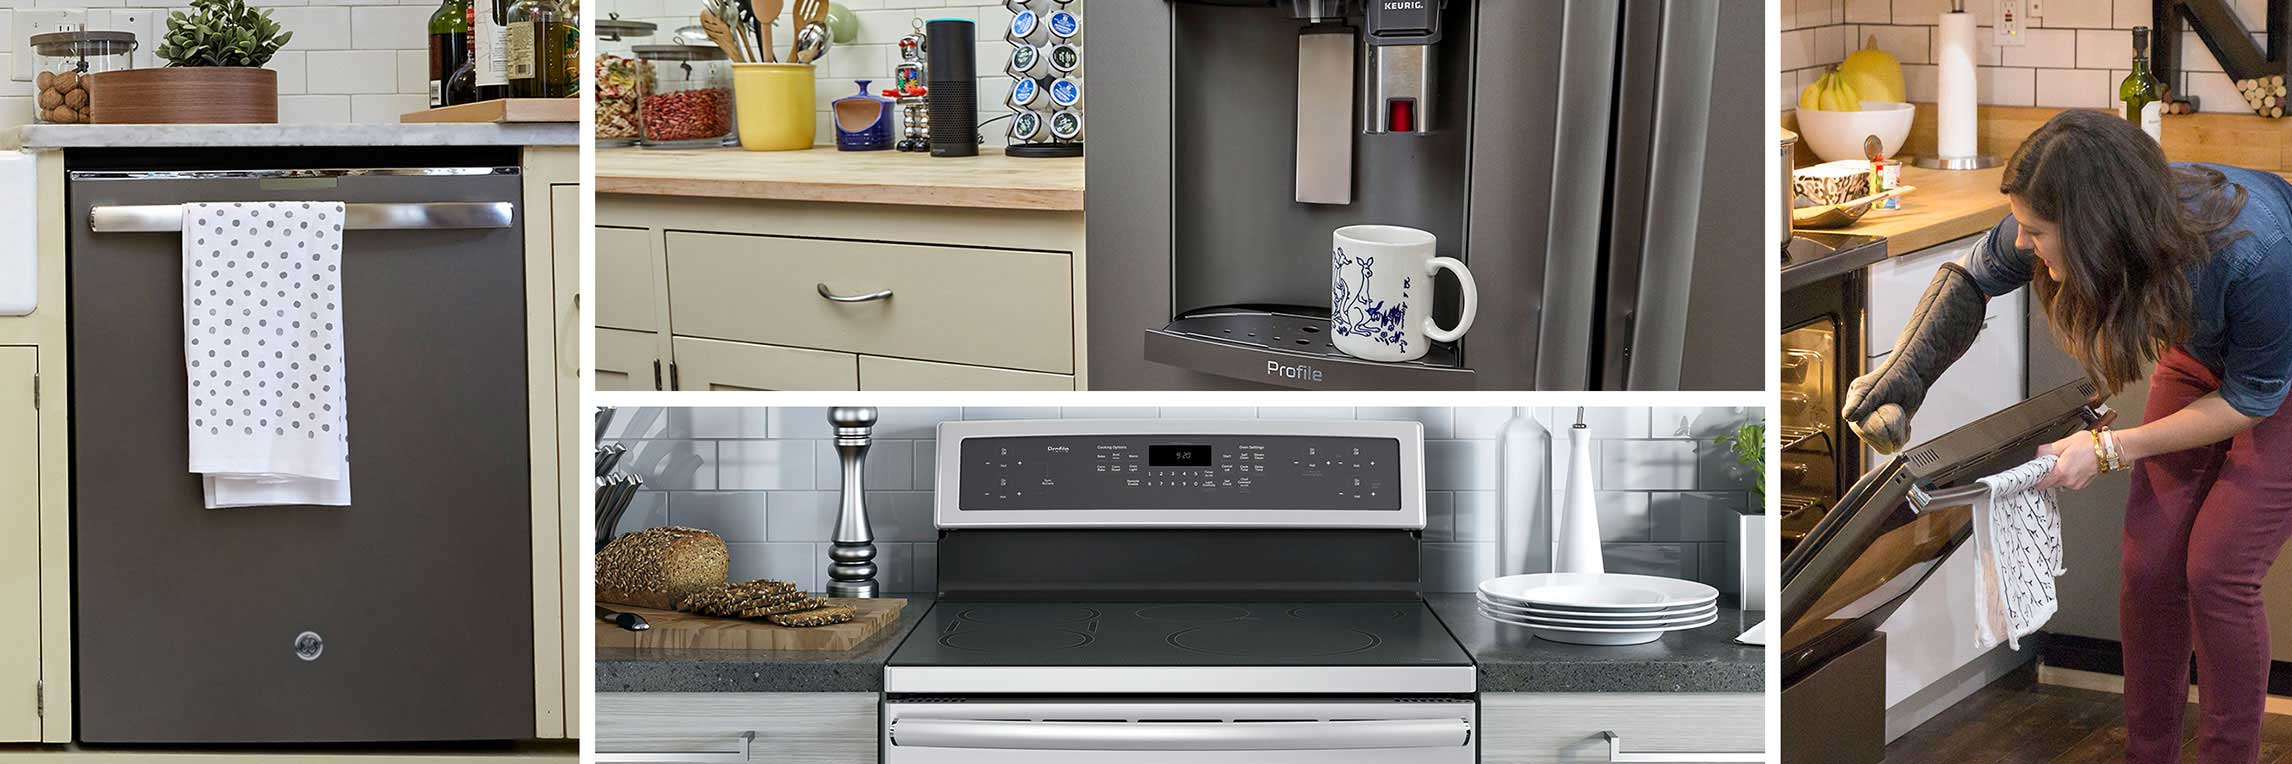 Collage of GE Appliances